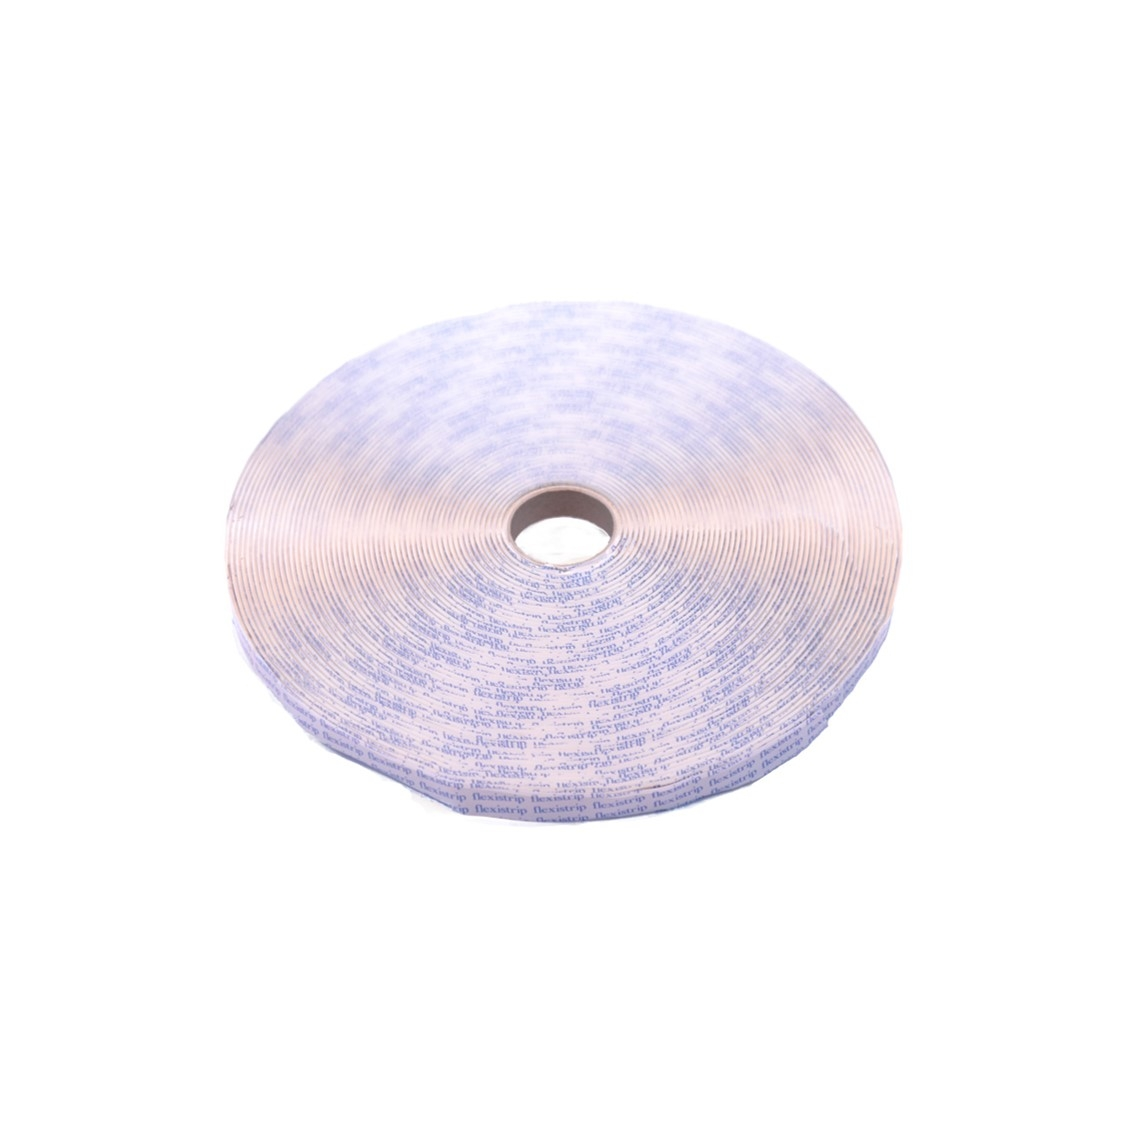 Flexistrip 12x2.5mm Off White Butyl Glazing Strip (19m Reel)